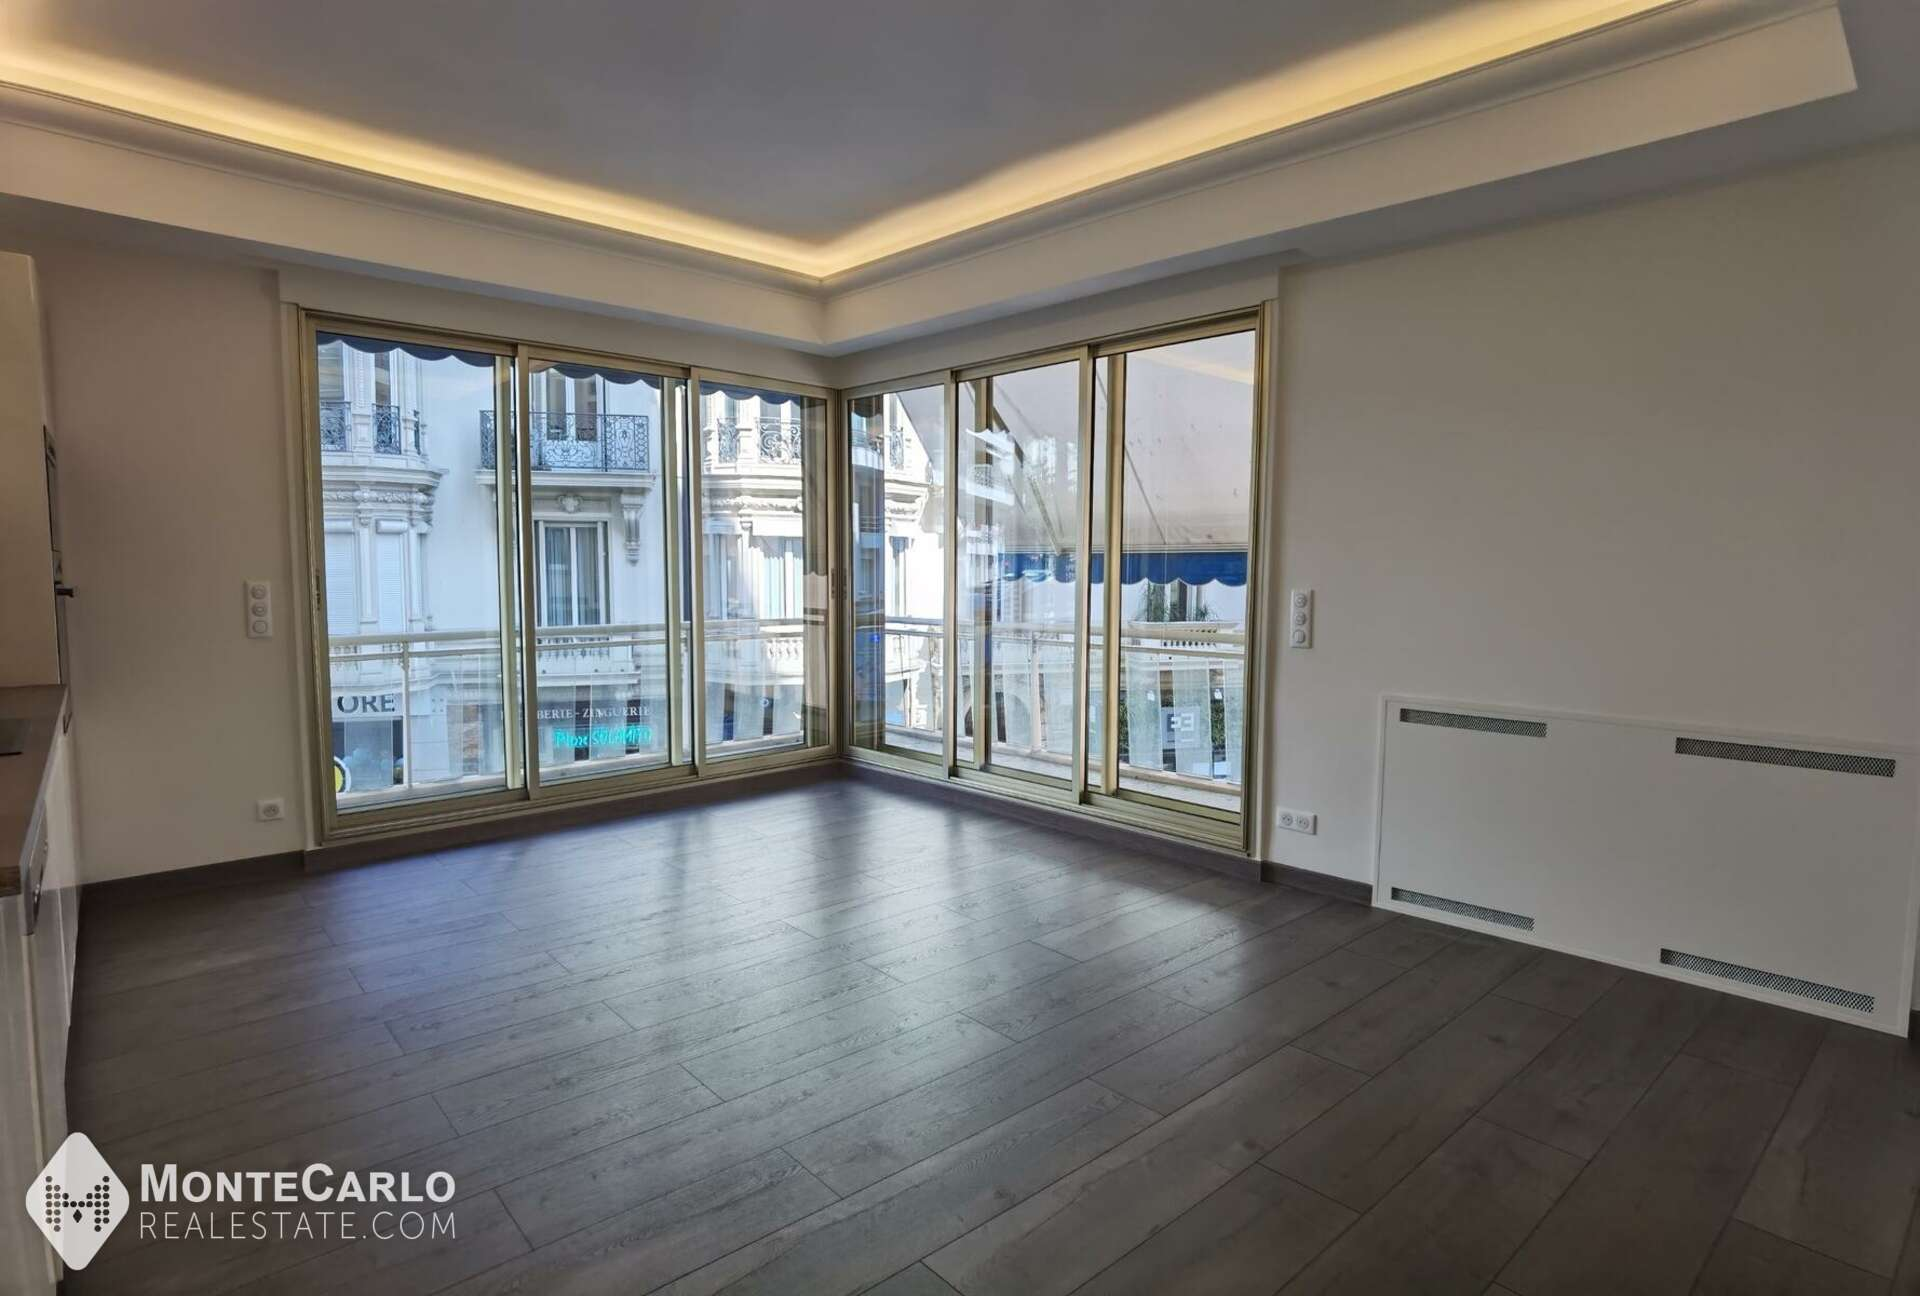 For sale Roqueville - Office / 4 rooms : 4 950 000 € | Monte-Carlo Real Estate [2196]